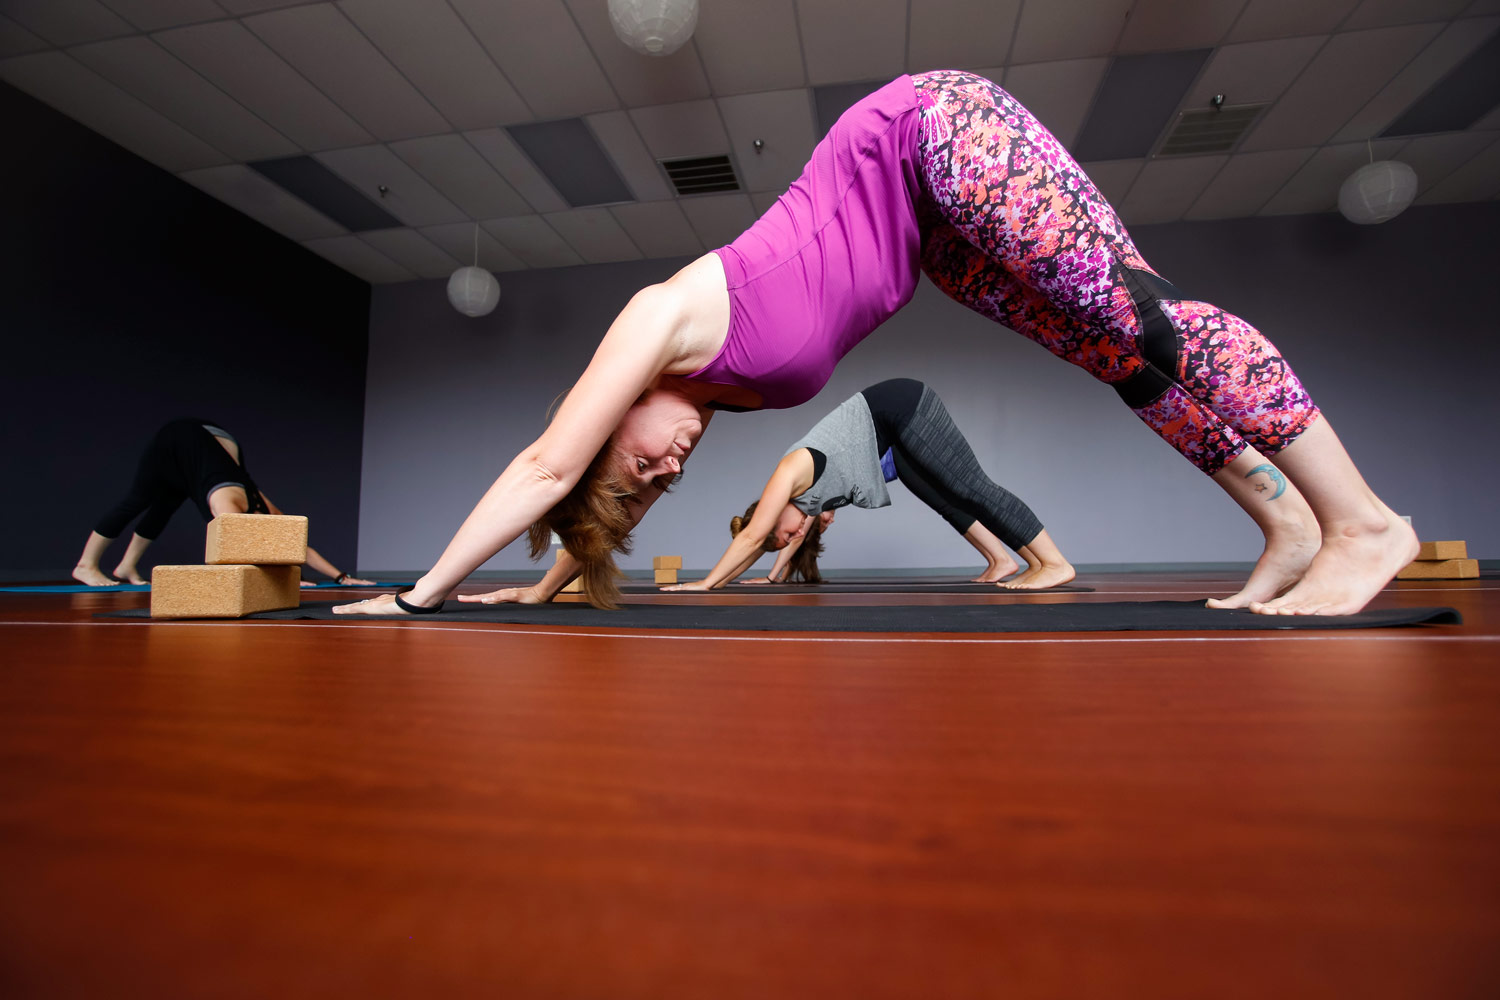 ohmmother-yoga-marketing-commercial-promotional-ruthie-hauge-photography-madison-wi-15.jpg